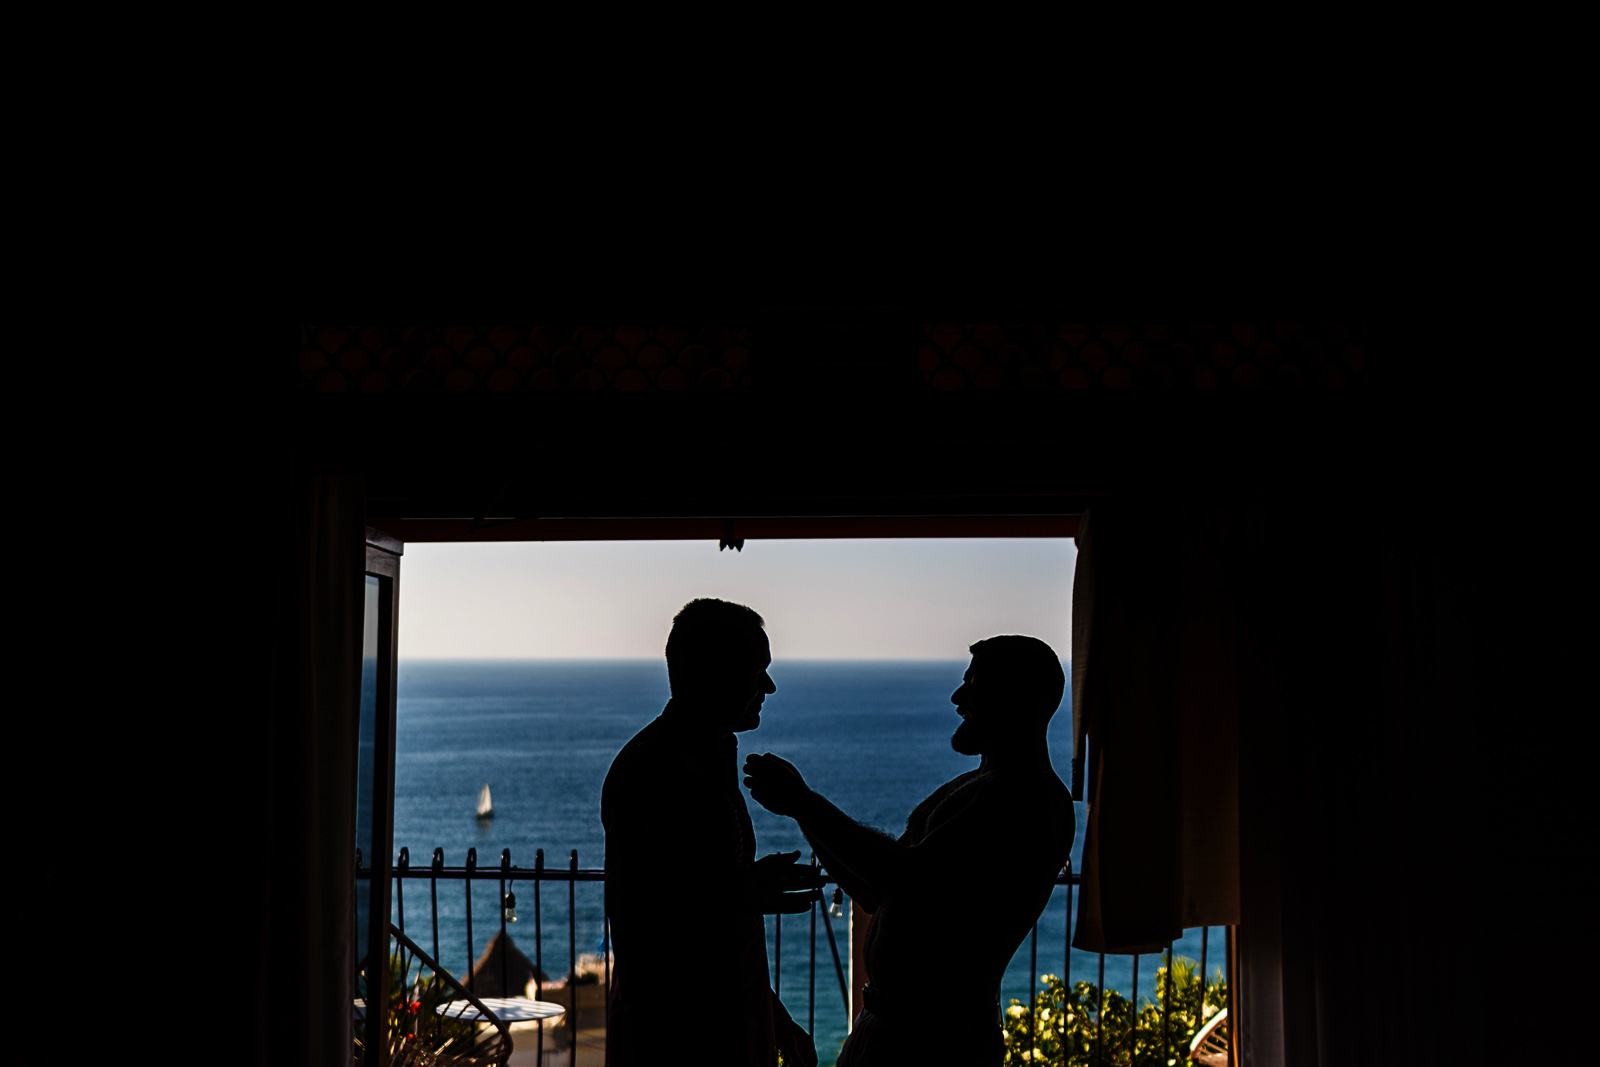 Silhouette of groom and best man getting ready for wedding ceremony